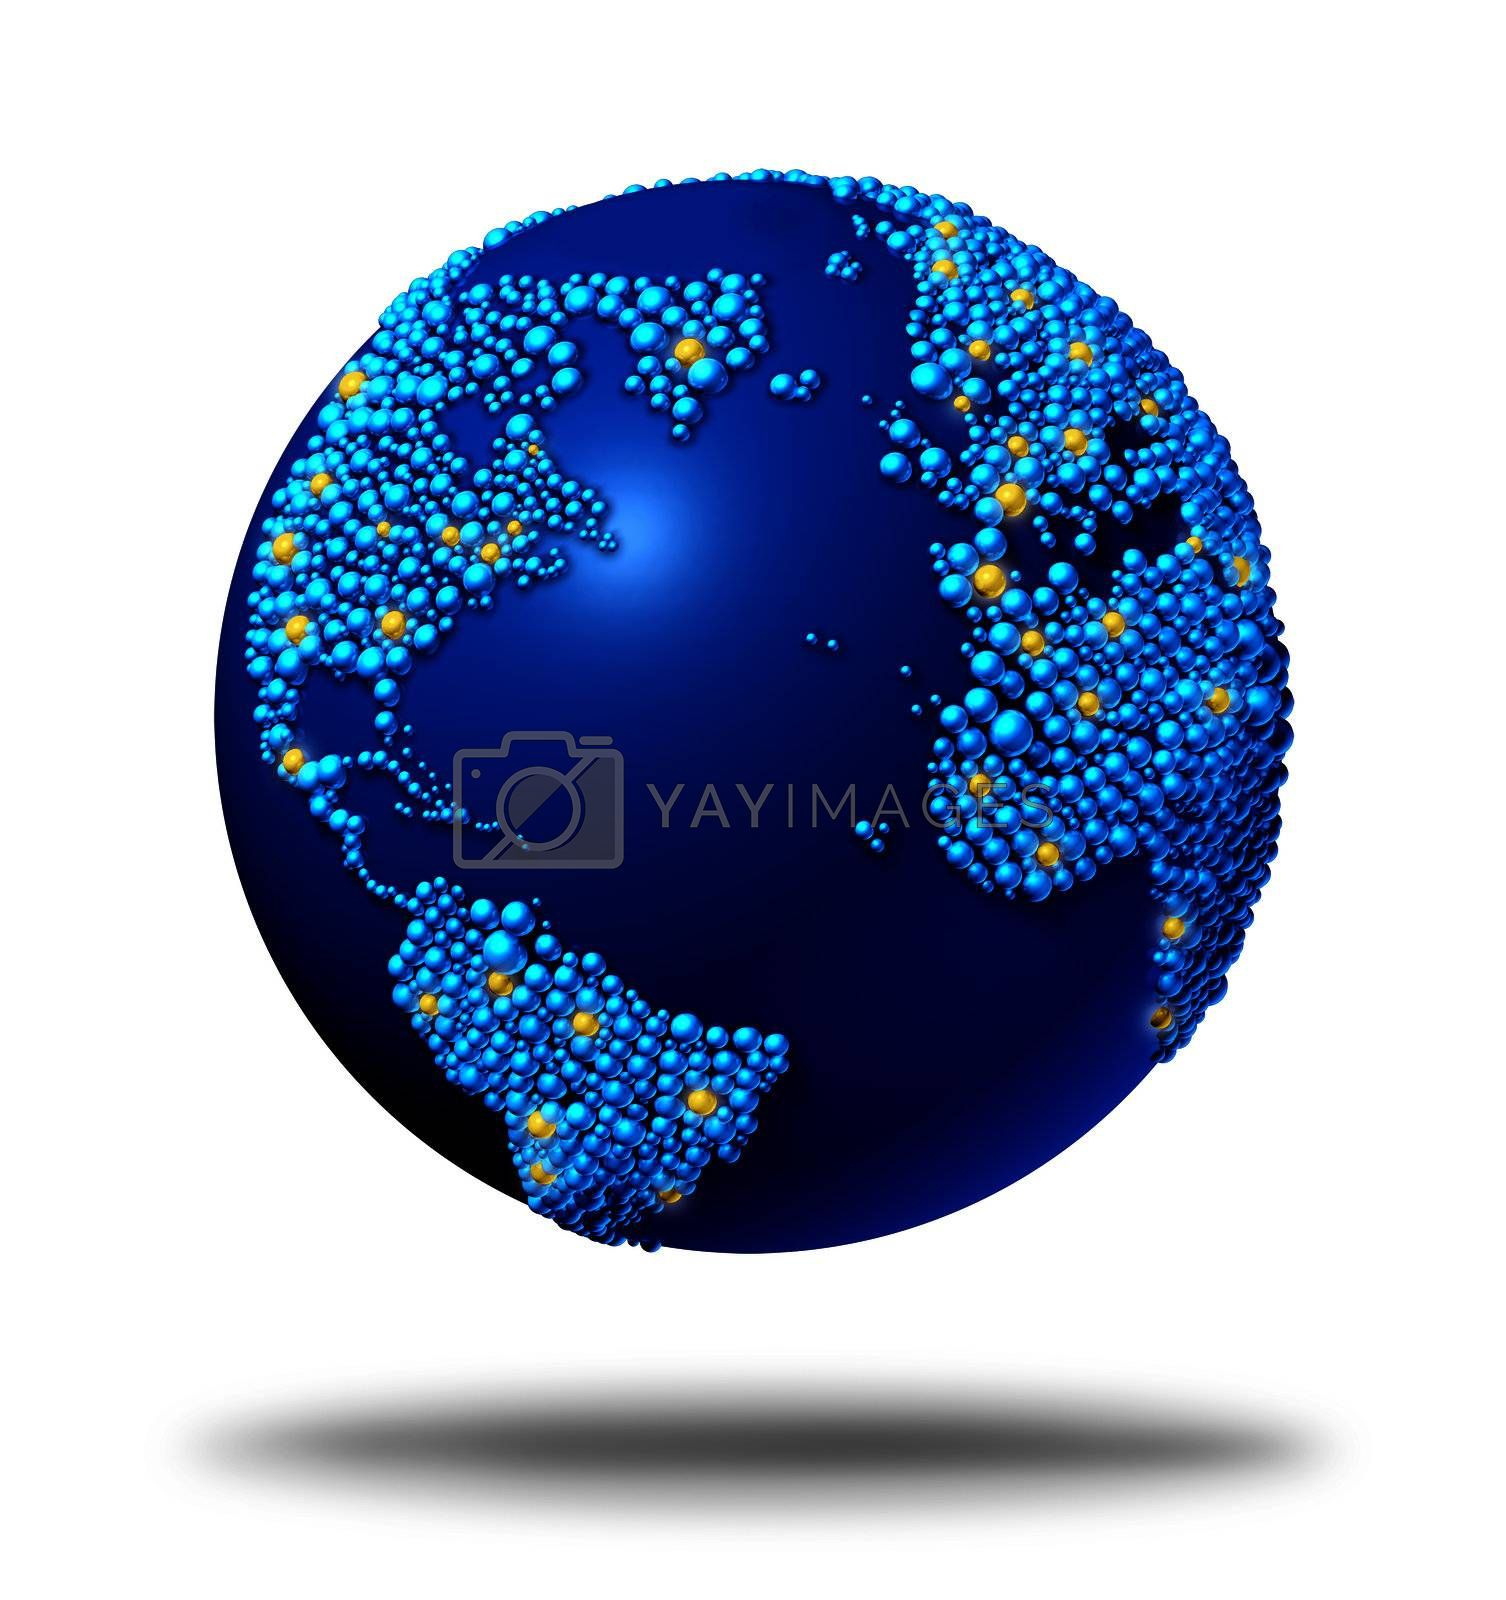 Global connections and communications symbol concept with a blue international globe of the worldmade of small globes around a sphere as a social exchange and trade icon for imports and exports.